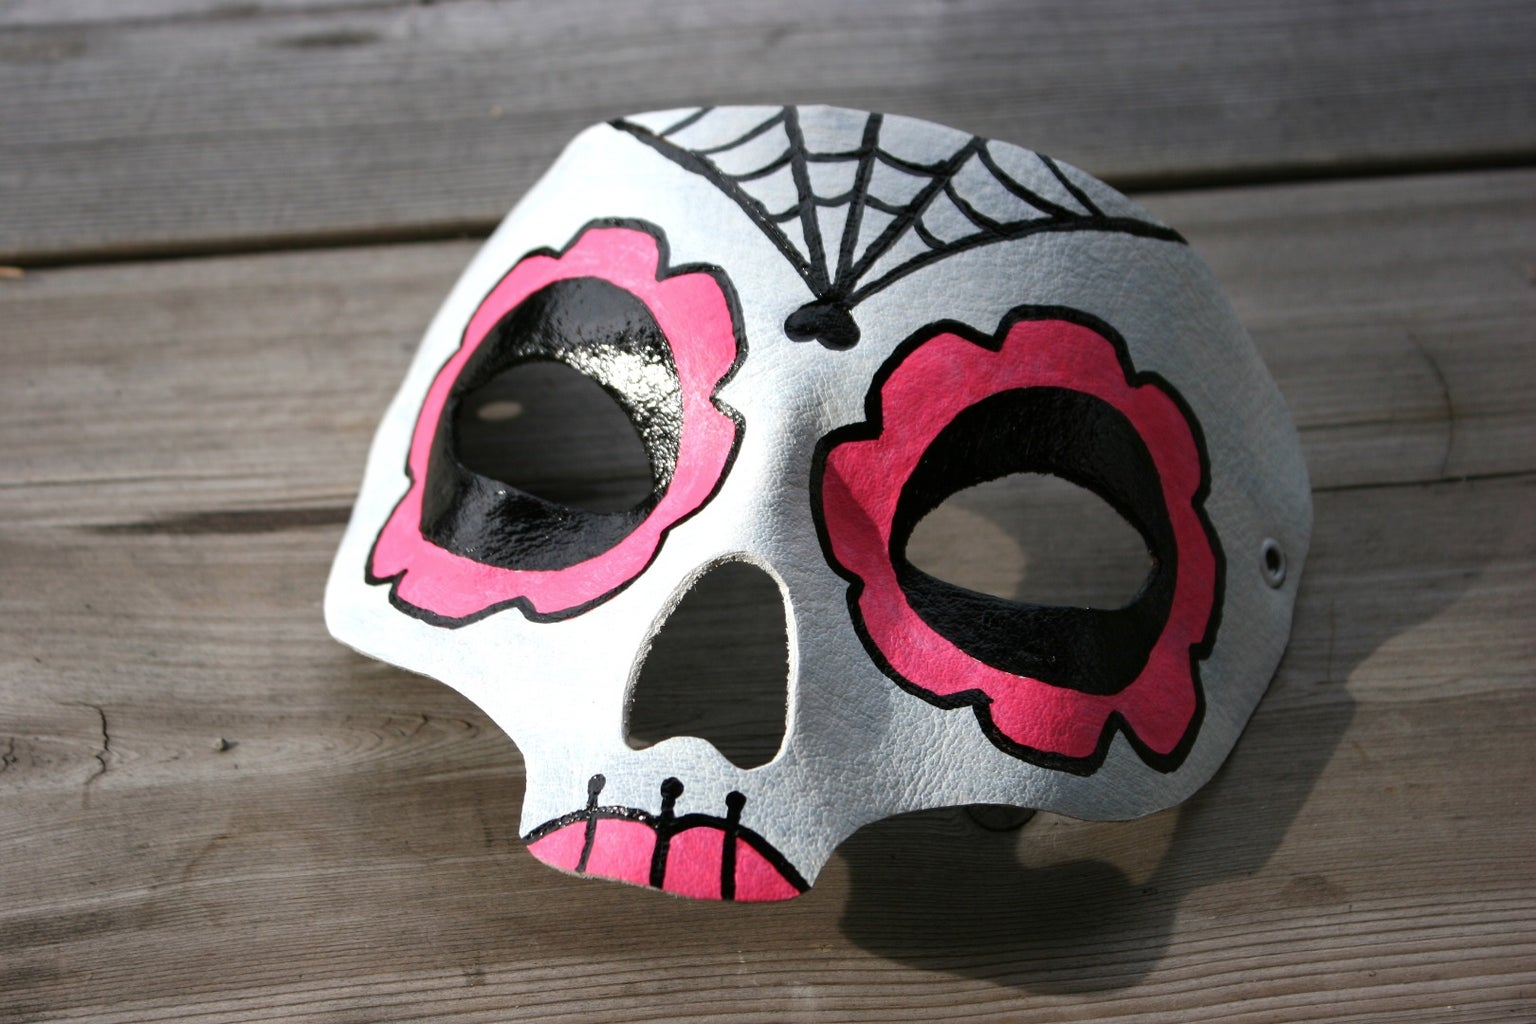 Paint Your Mask